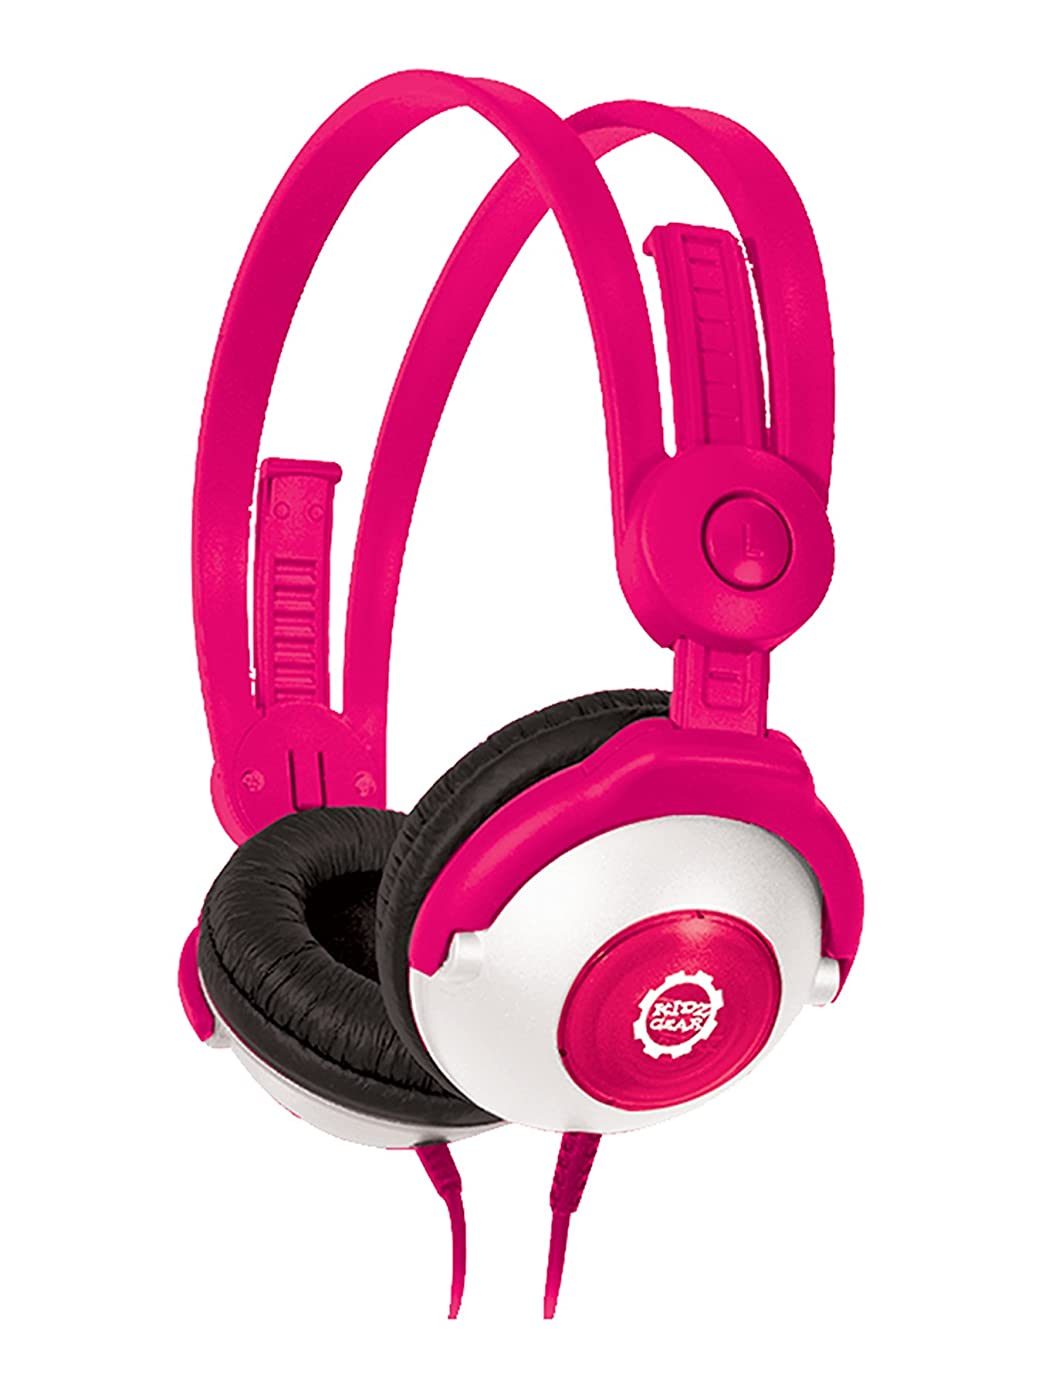 Kidz Gear Wired Headphones for Kids – Pink